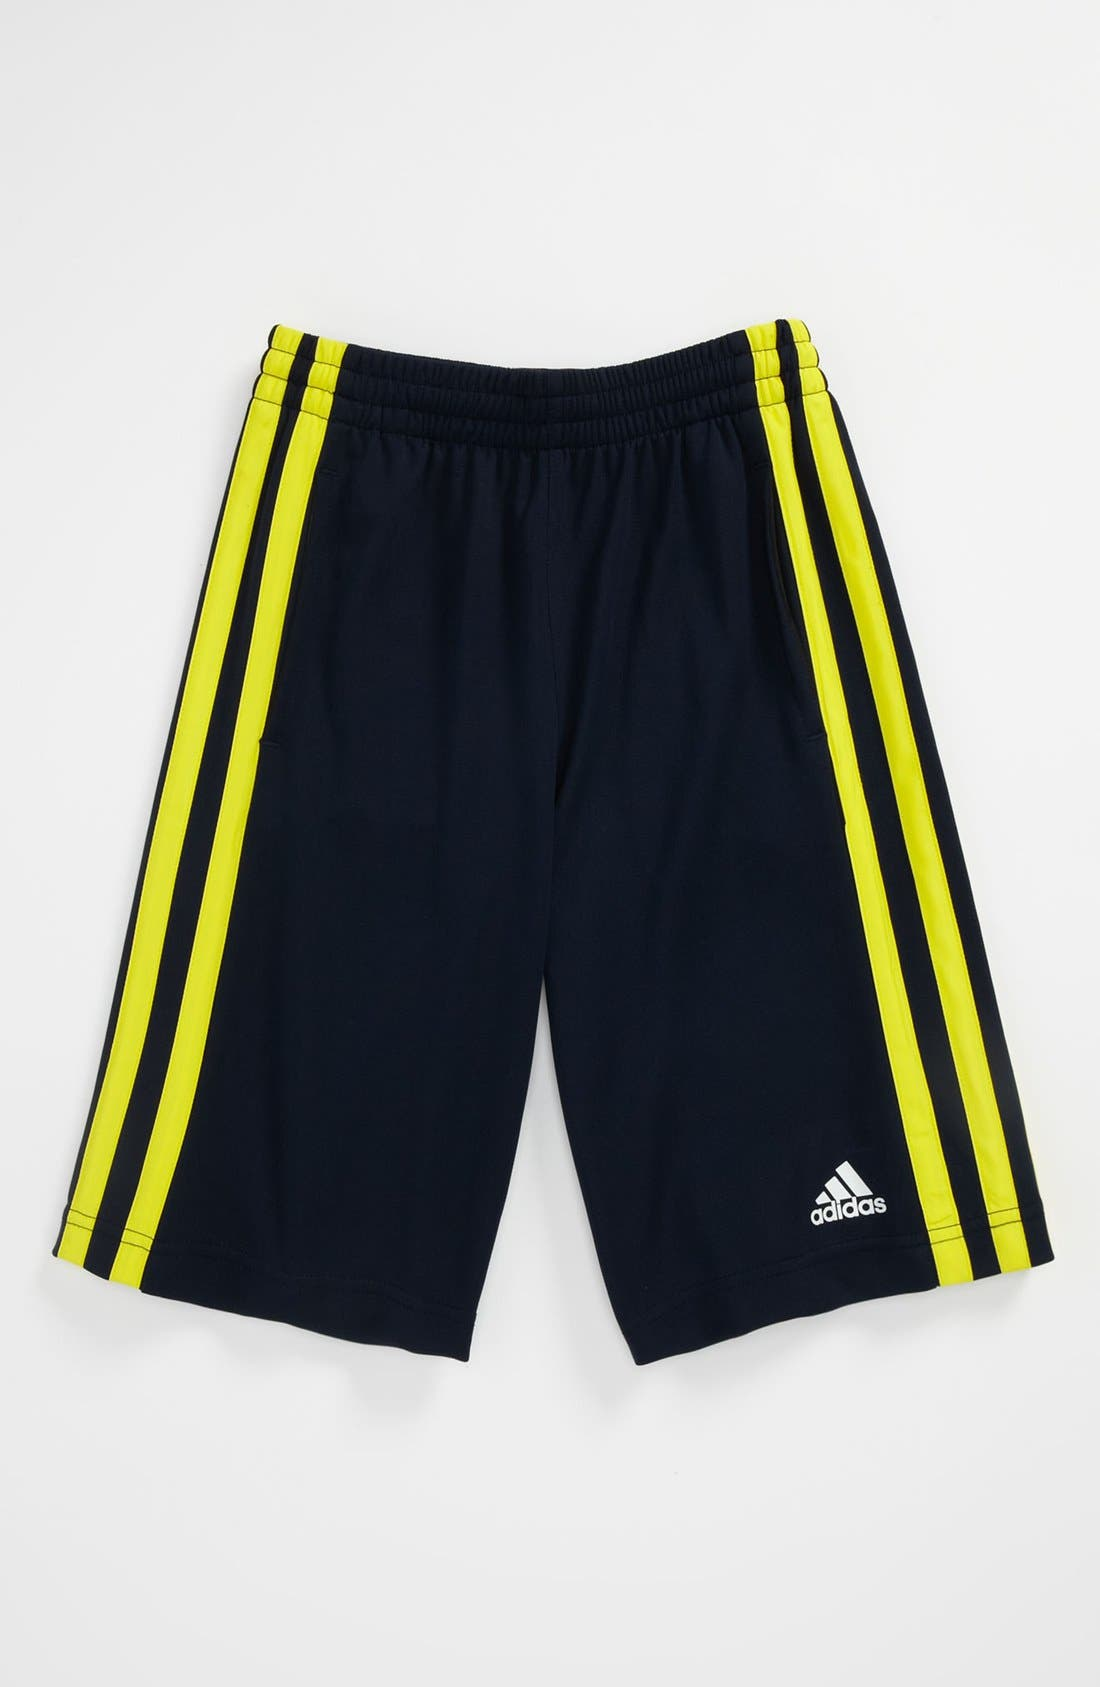 Alternate Image 1 Selected - adidas 'Fat Stripes' Shorts (Big Boys)